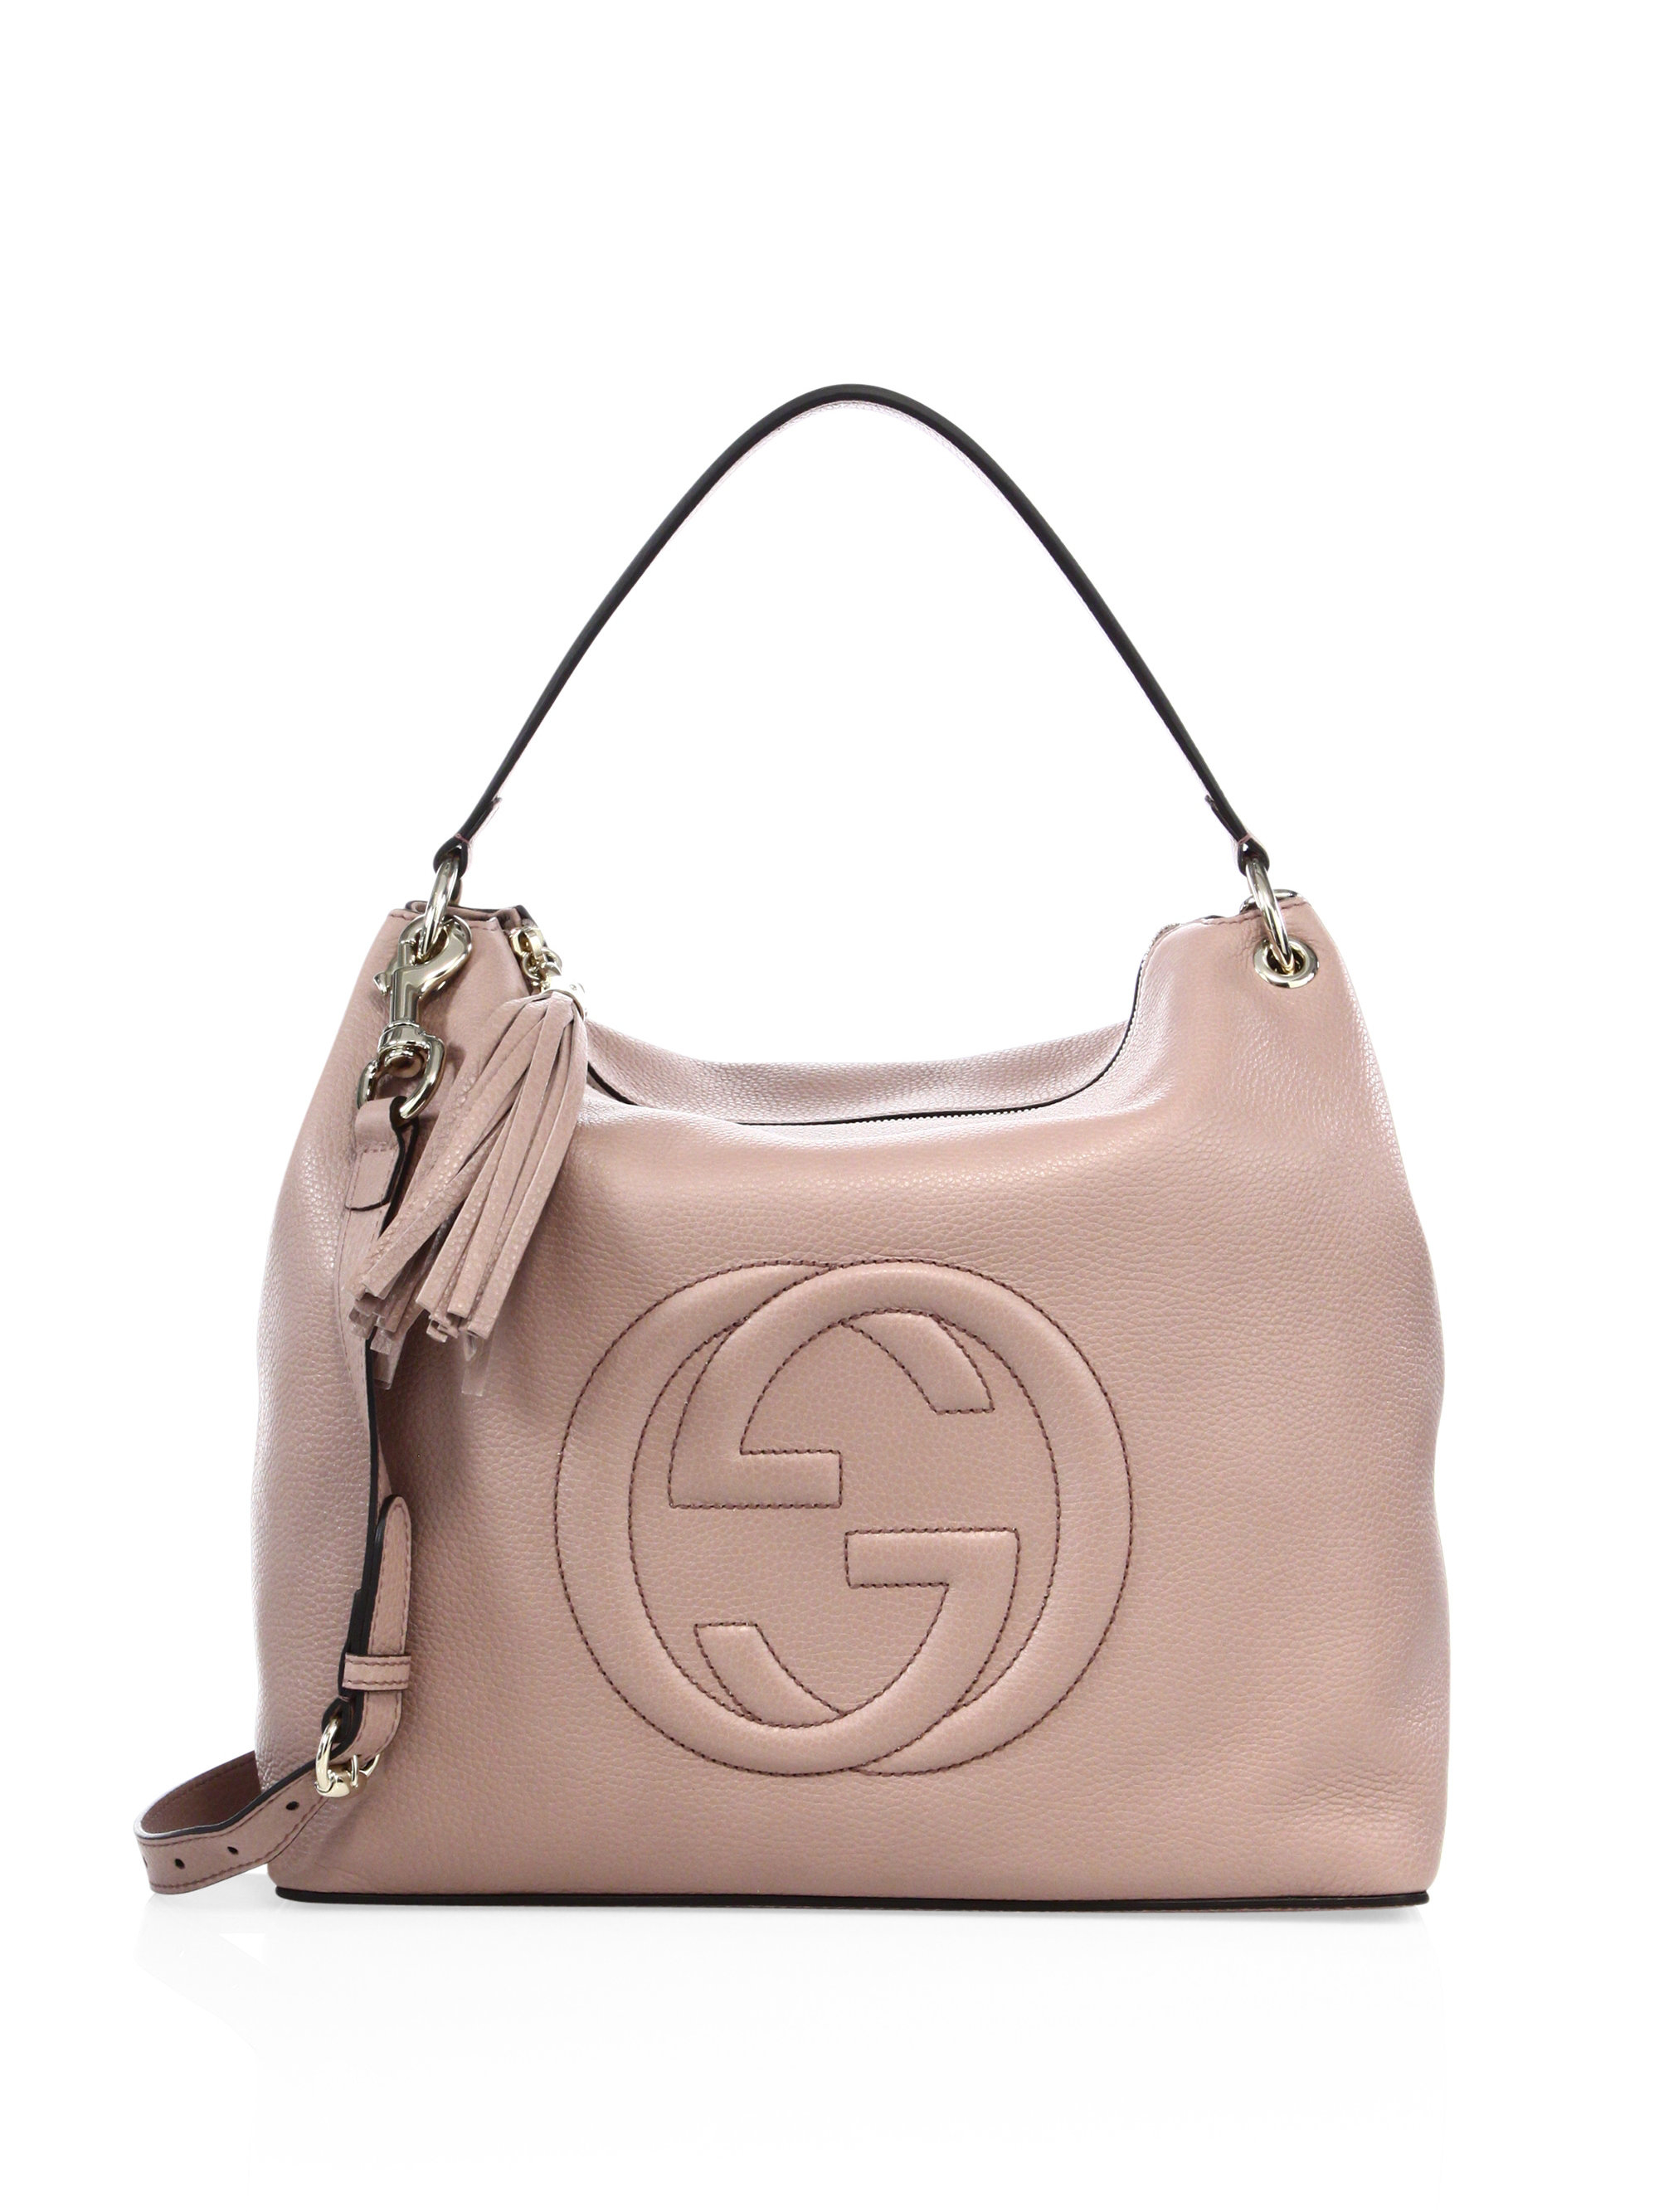 gucci soho large leather hobo bag in pink lyst. Black Bedroom Furniture Sets. Home Design Ideas